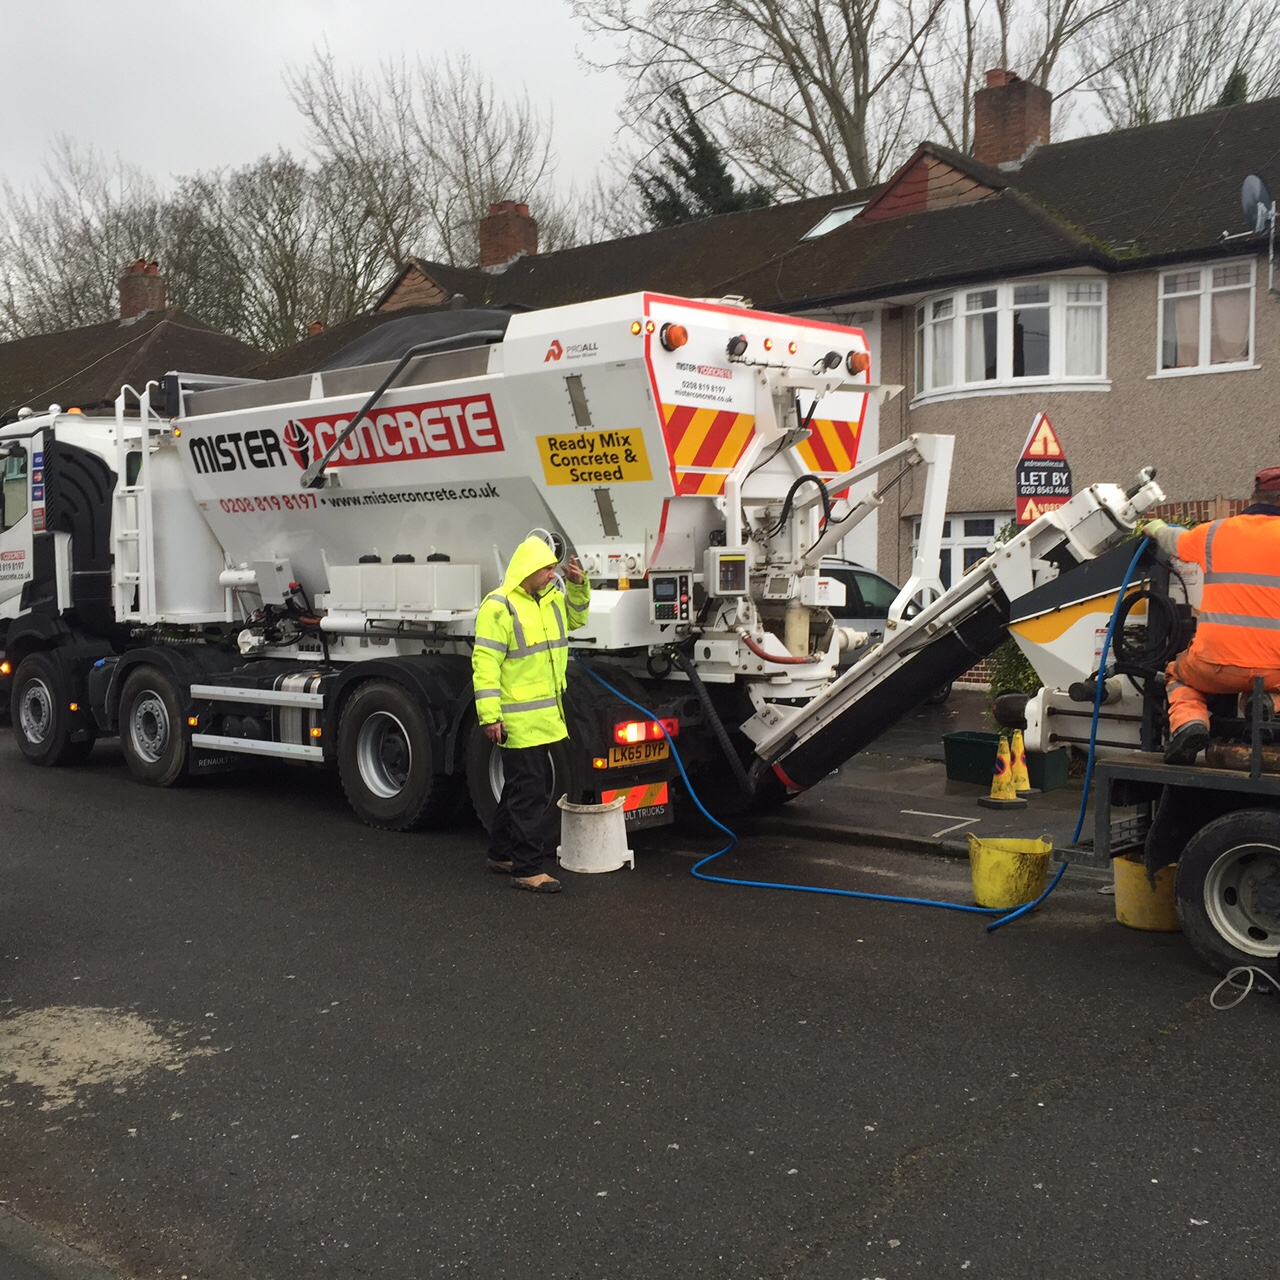 ready mix concrete south london, concrete truck